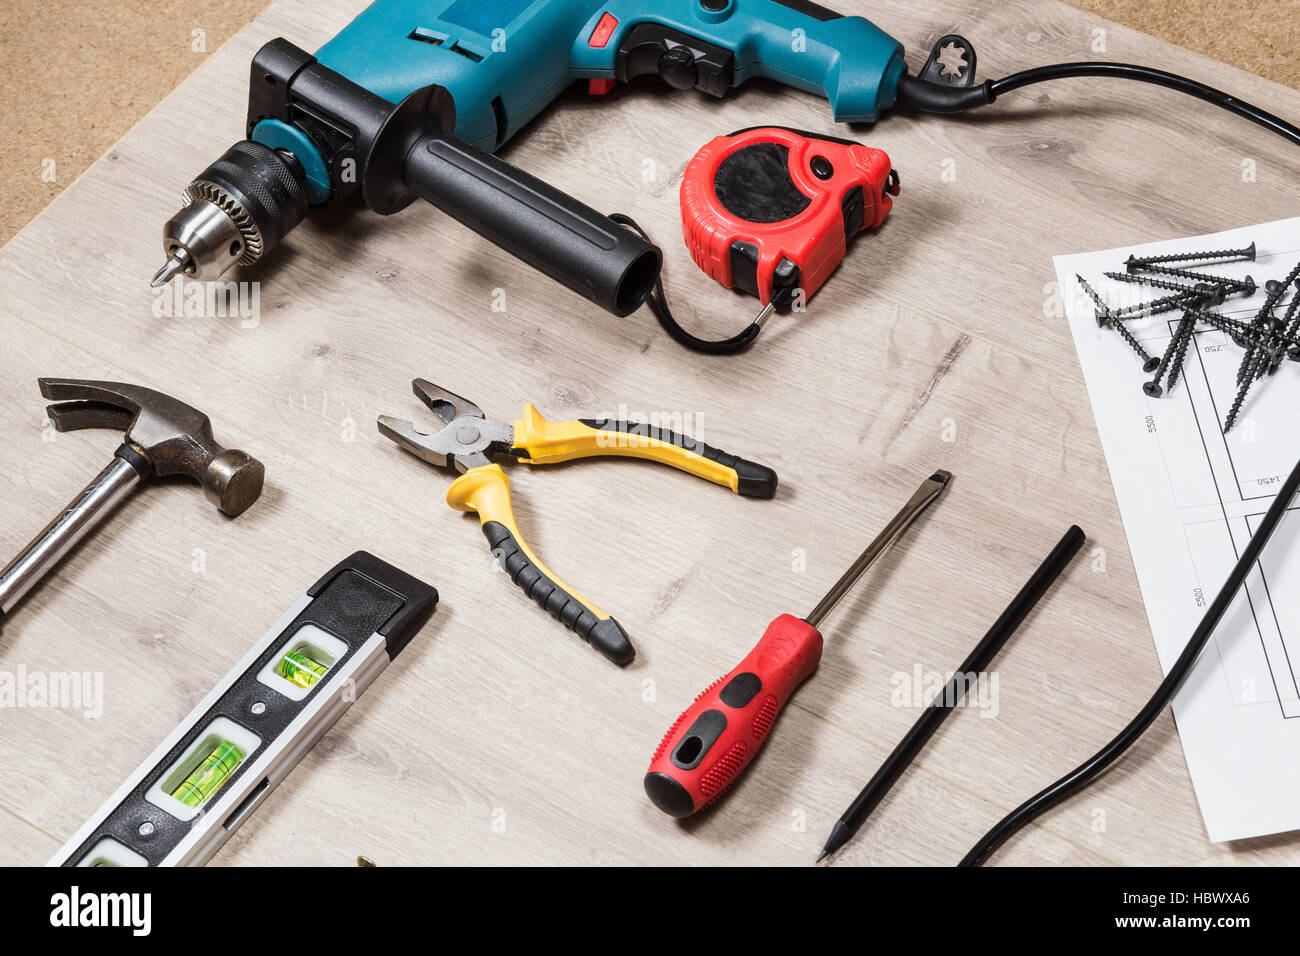 Set of construction tools to repair on a wooden surface: drill, hammer, pliers, self-tapping screws, roulette,  - Stock Image